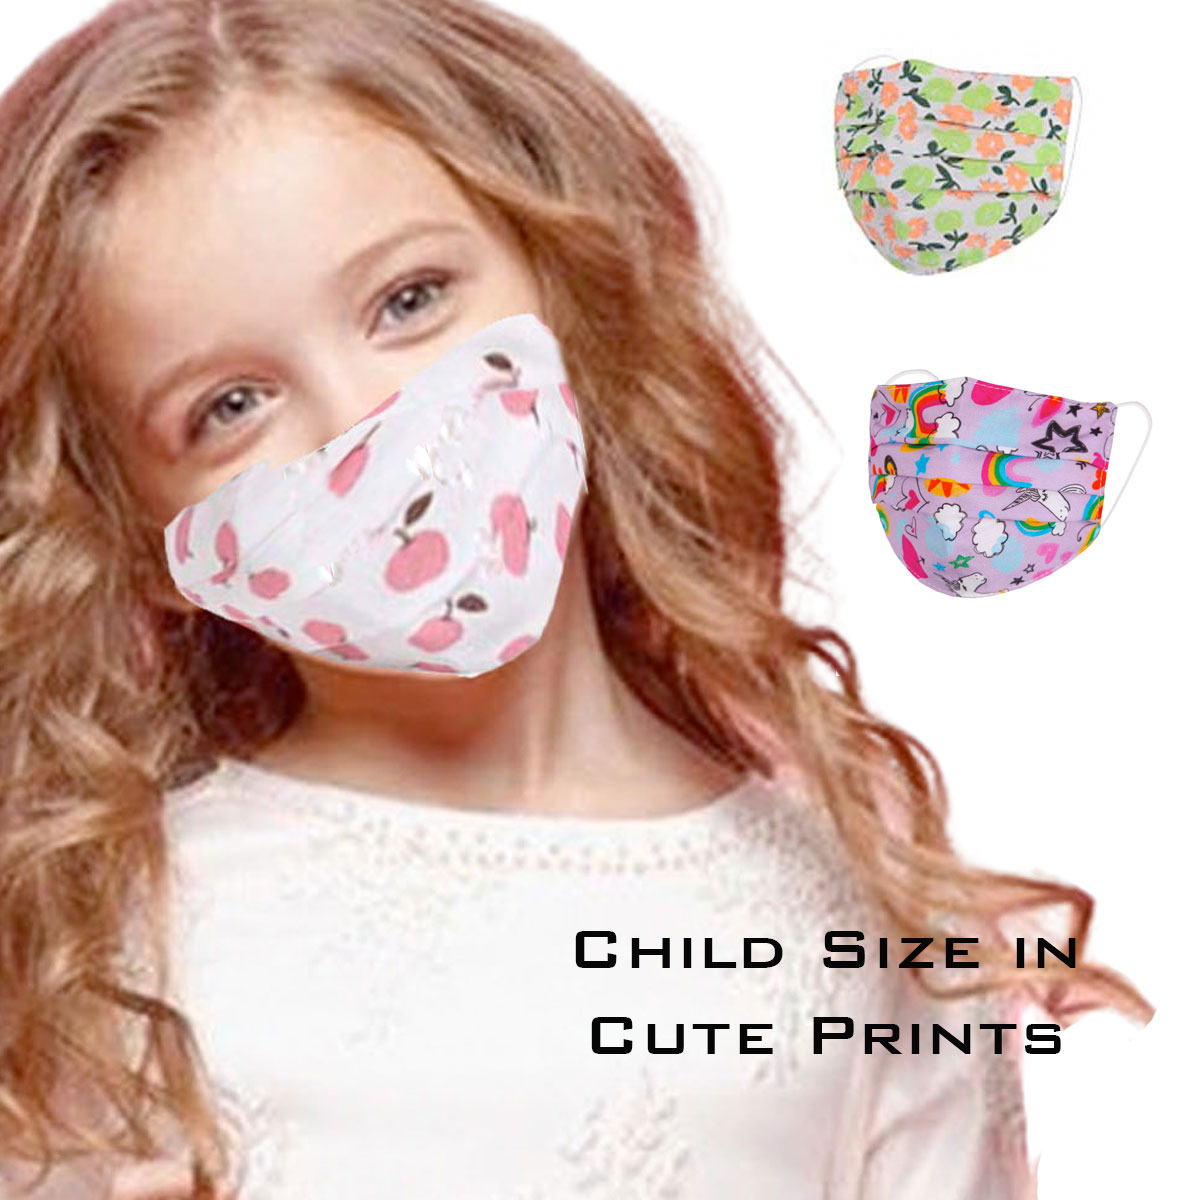 Protective Masks by Jessica - Child Size